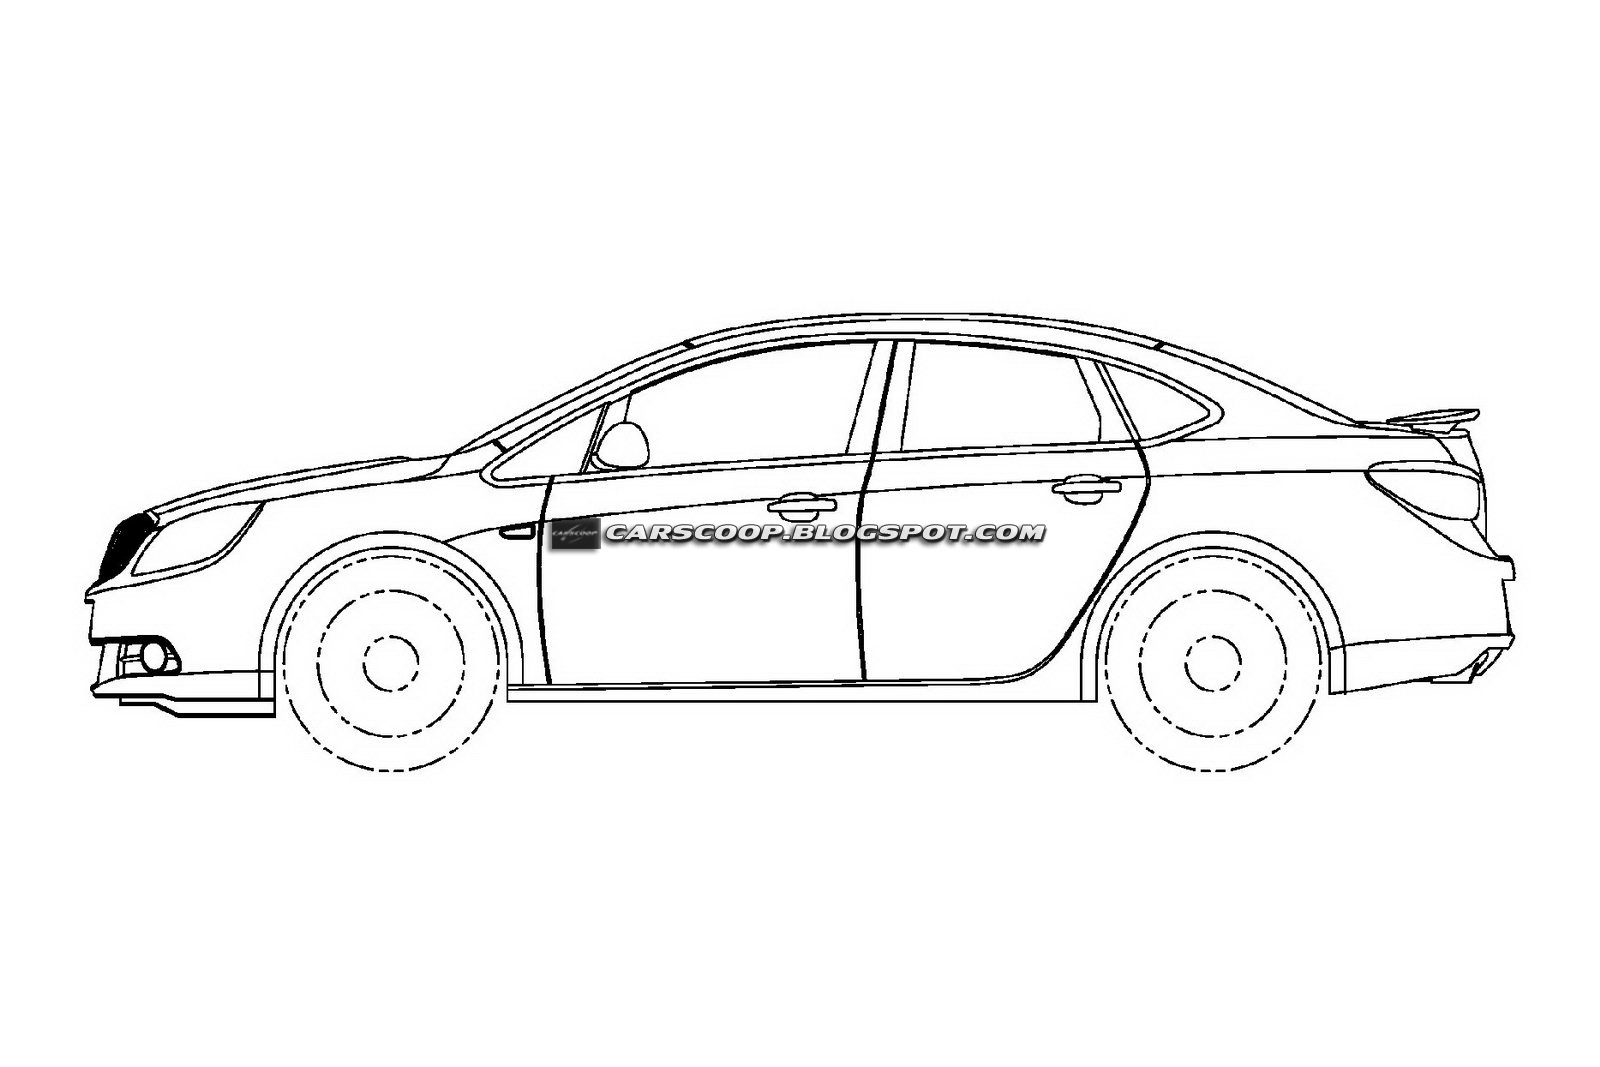 THE CAR: U.S. Patent Drawings of 2012 Buick Excelle Sedan